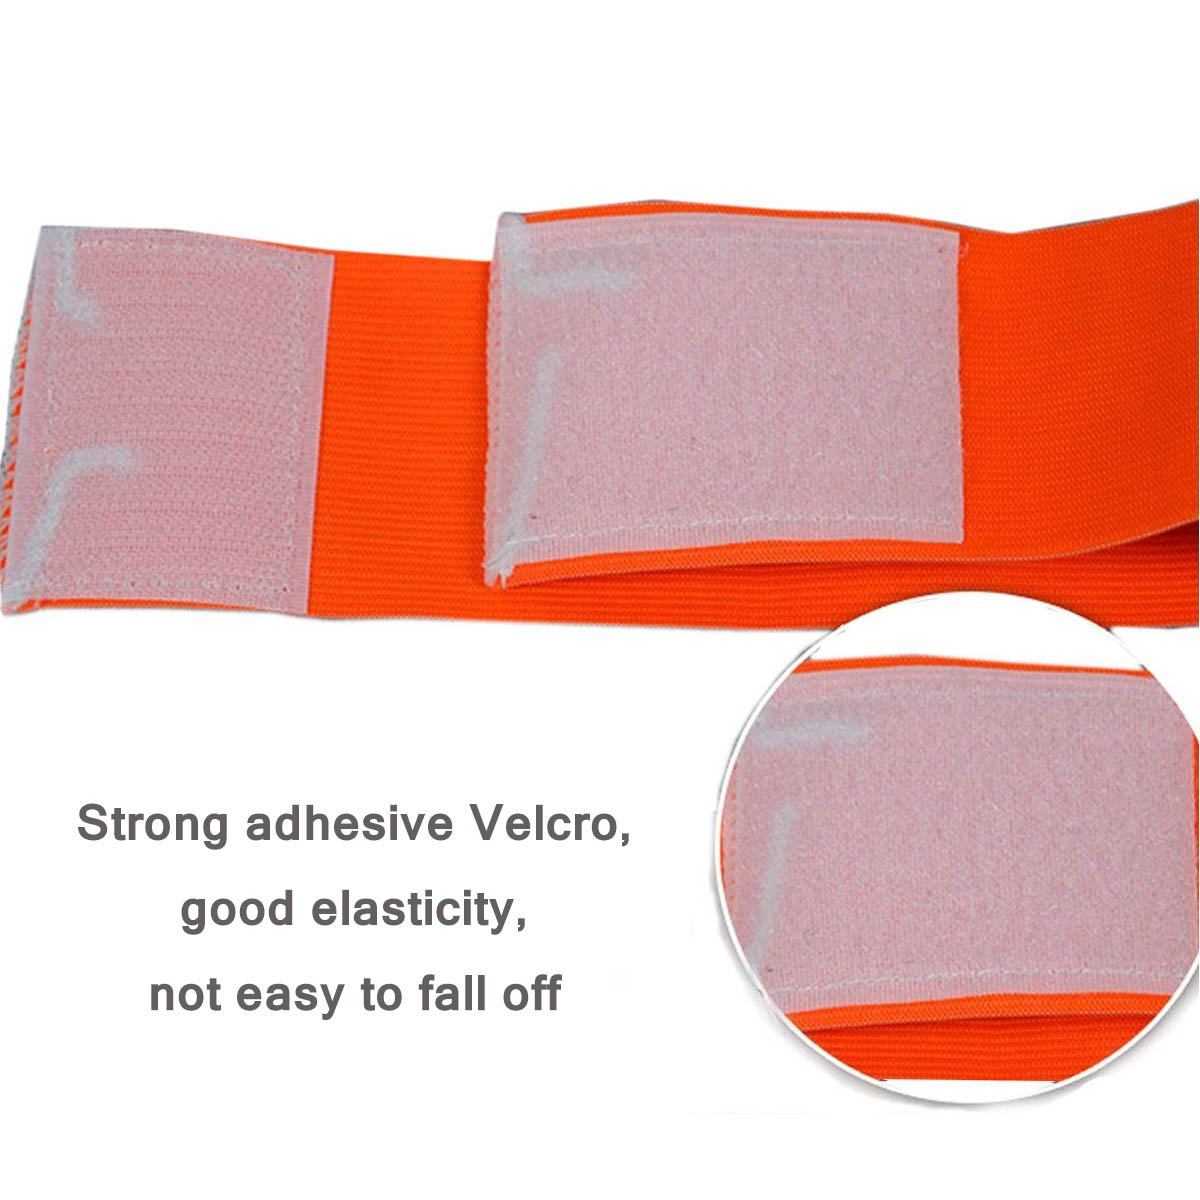 cjixnji Captain Armband Footbal For Kids Soccer Captains Armbands Junior,Standard Elasticated Velcro For Adjustable Size,Suitable For Multiple Sports Including Football /& Rugby